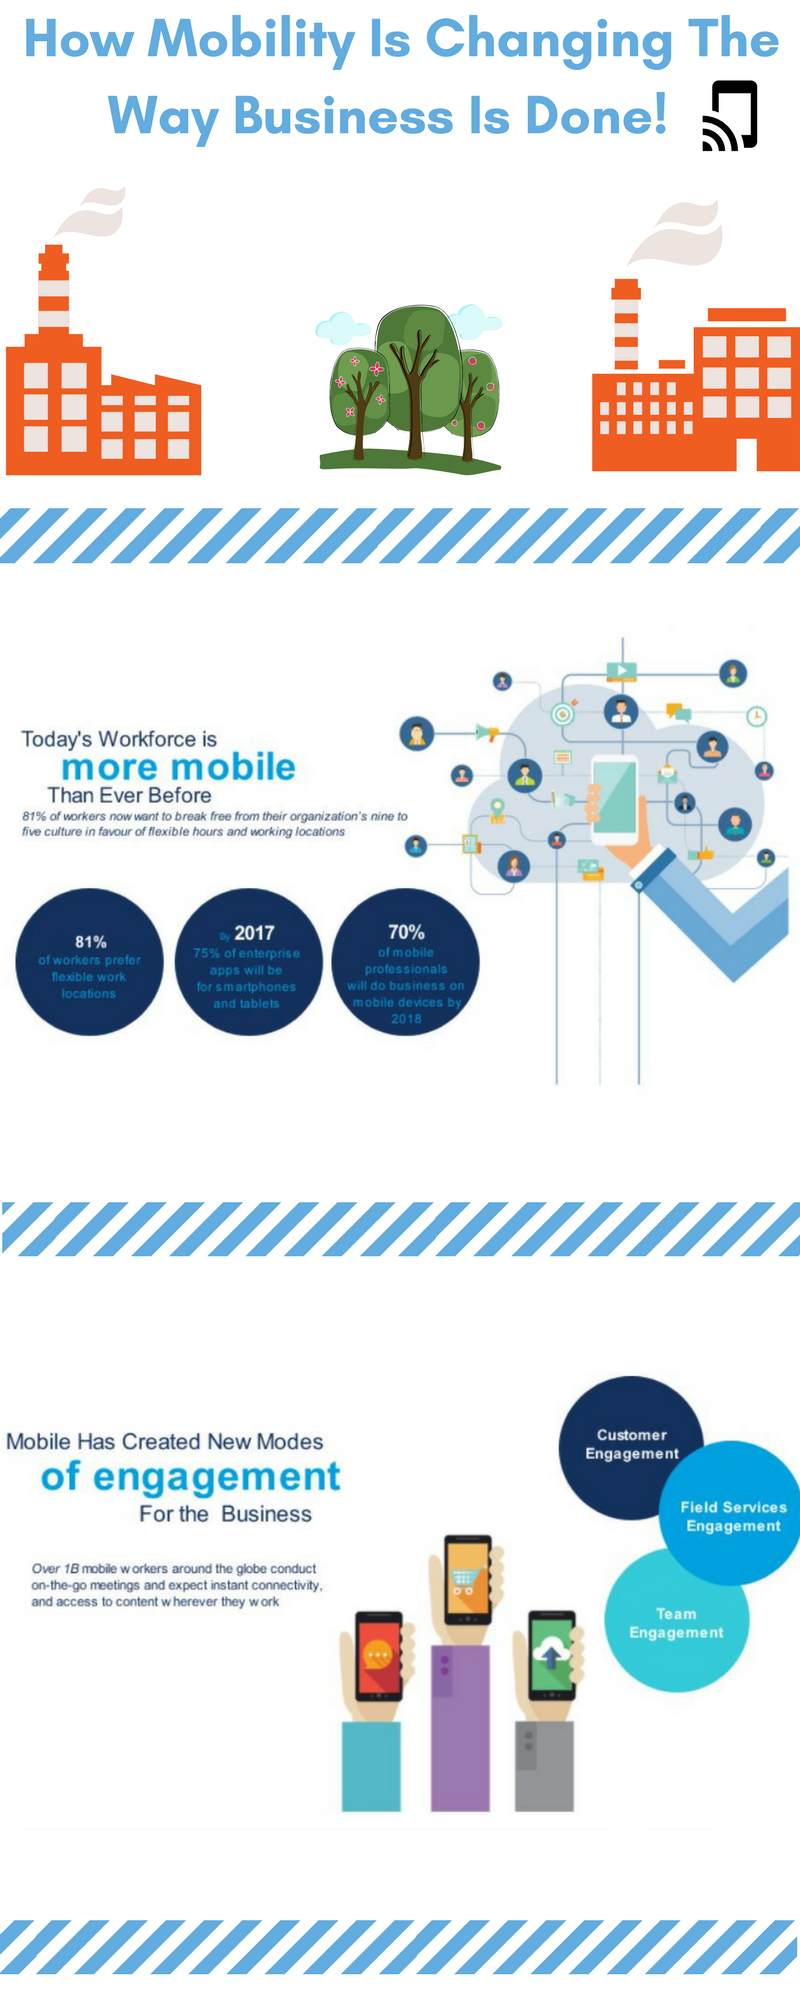 How Mobility is Changing Business communications